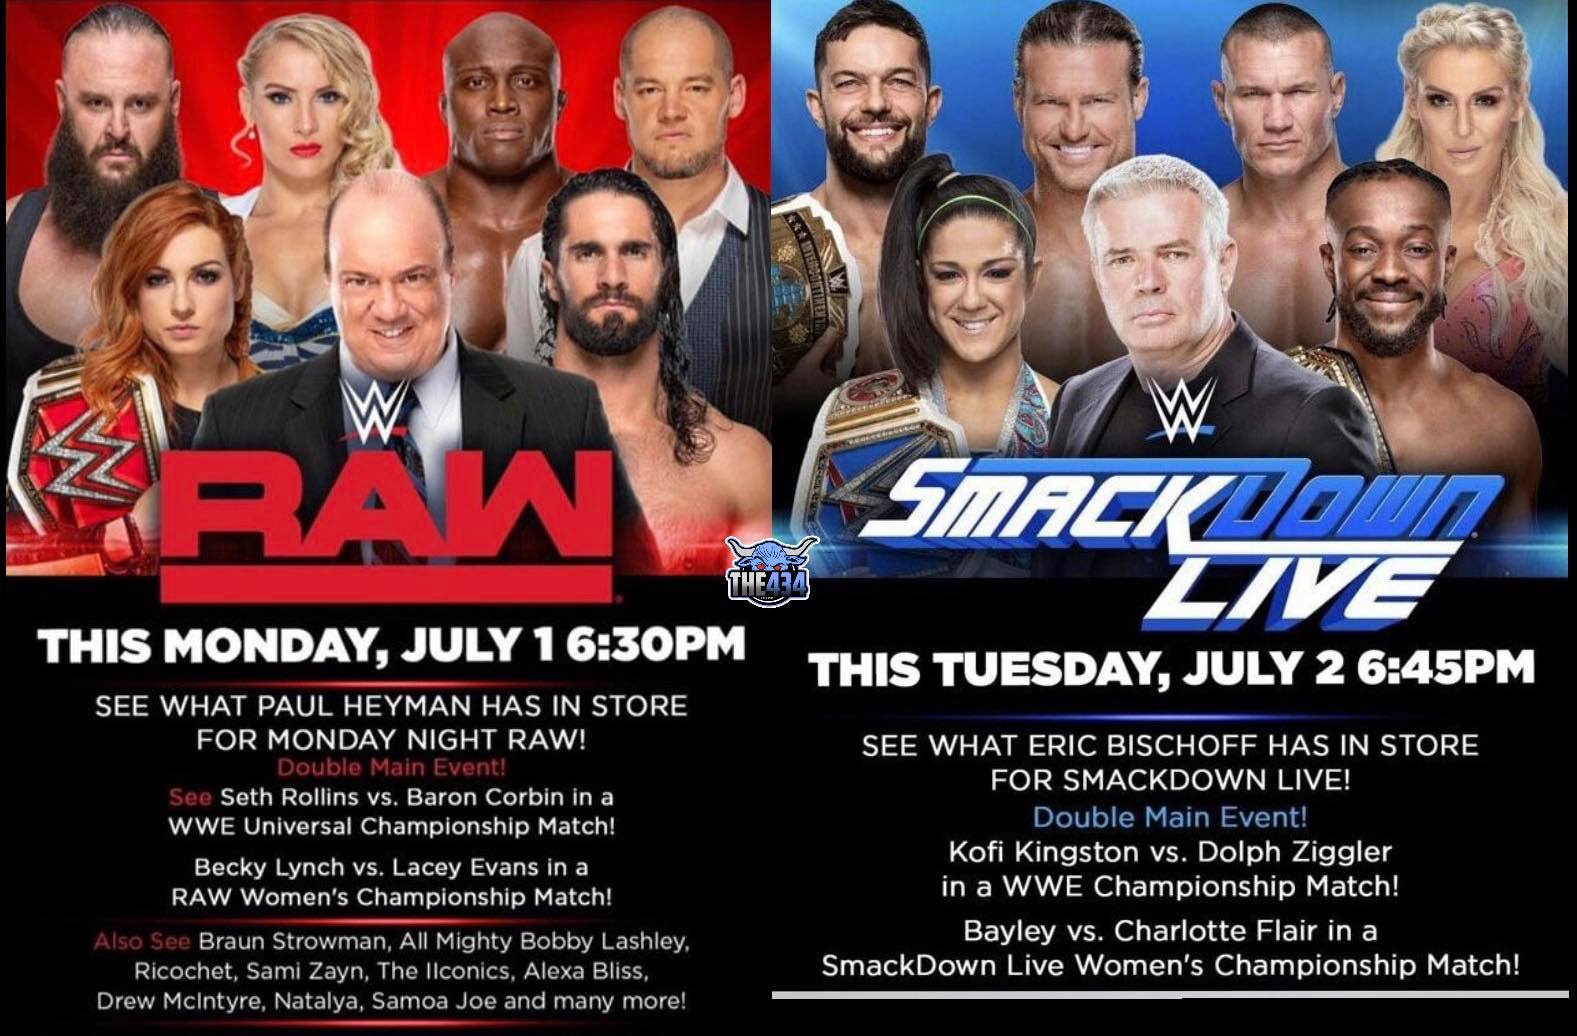 Paul Heyman and Eric Bischoff Being Advertised To Appear On RAW & SmackDown